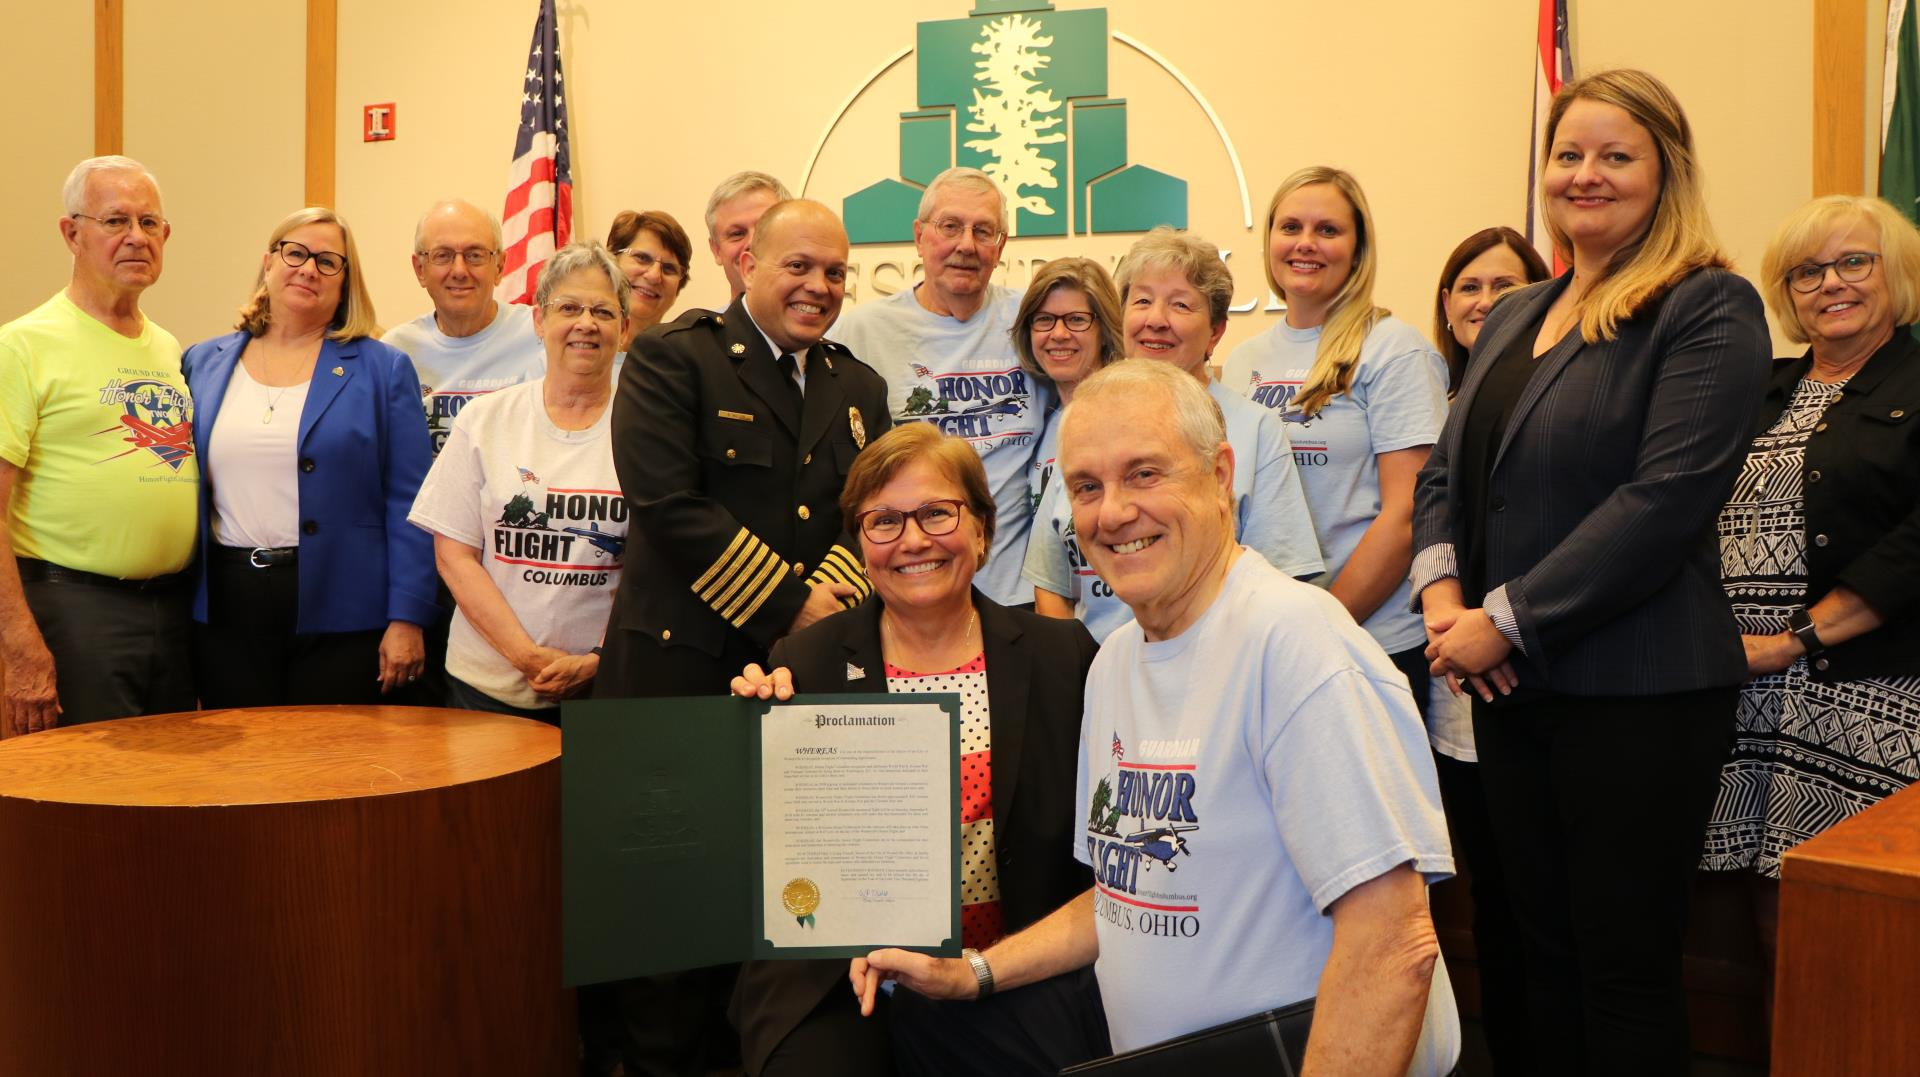 Rock Lantz and the Westerville Honor Flight Committee